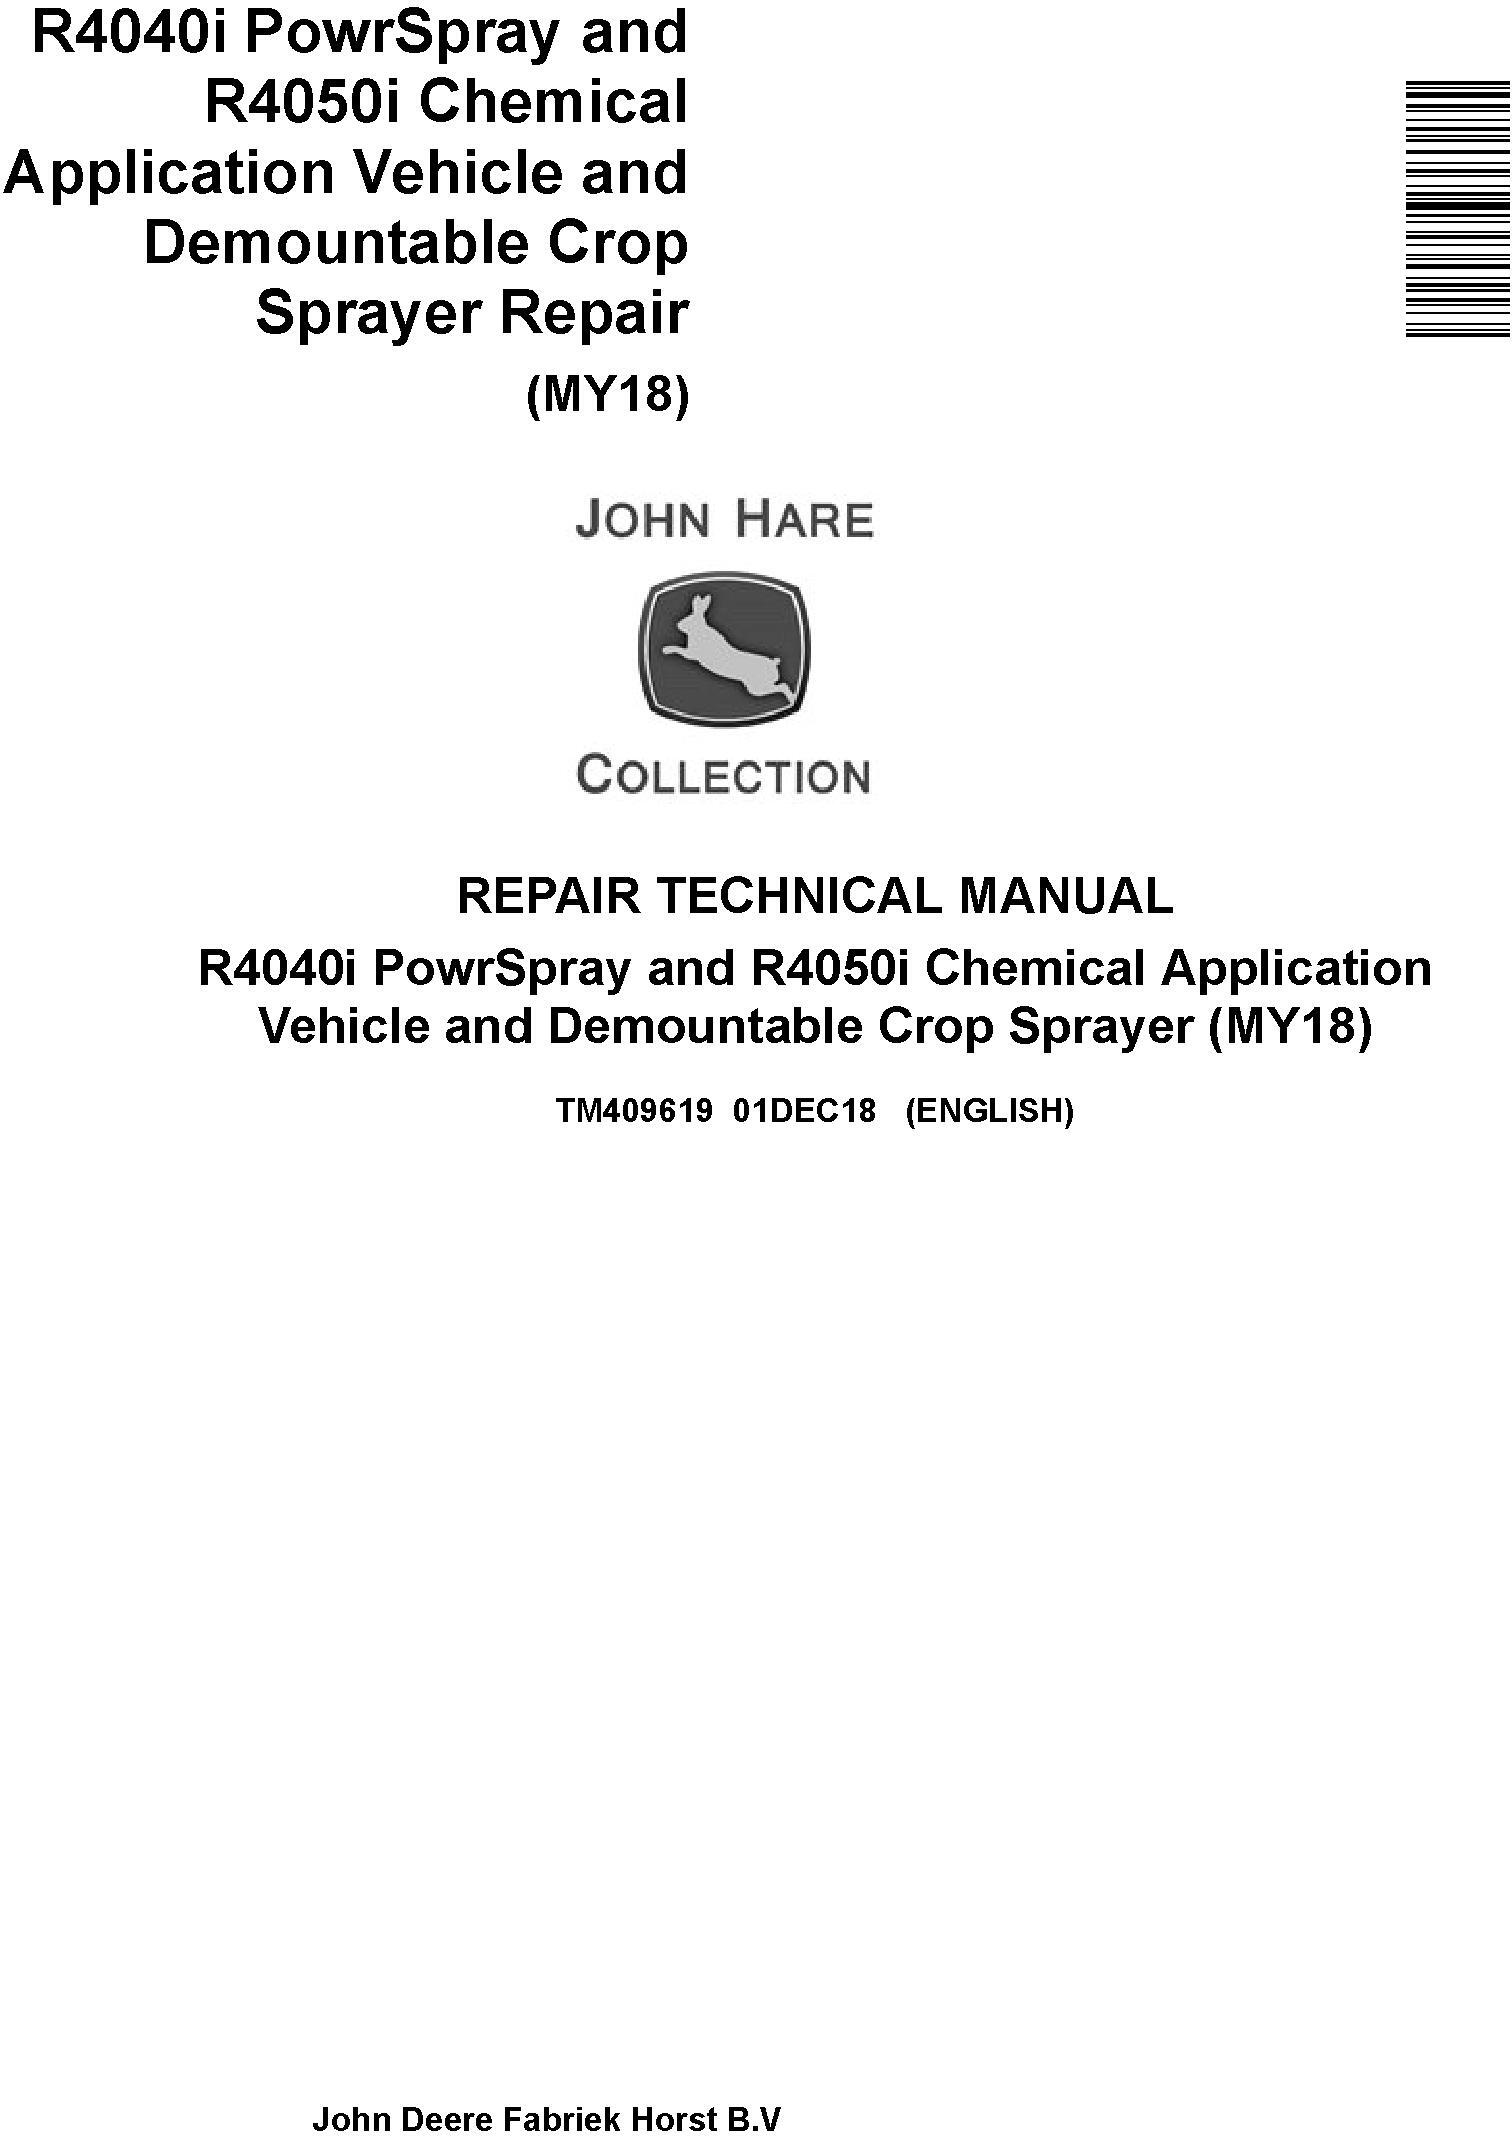 John Deere R4040i, R4050i Demountable Crop Sprayer (MY18) Repair Technical Service Manual (TM409619) - 19261